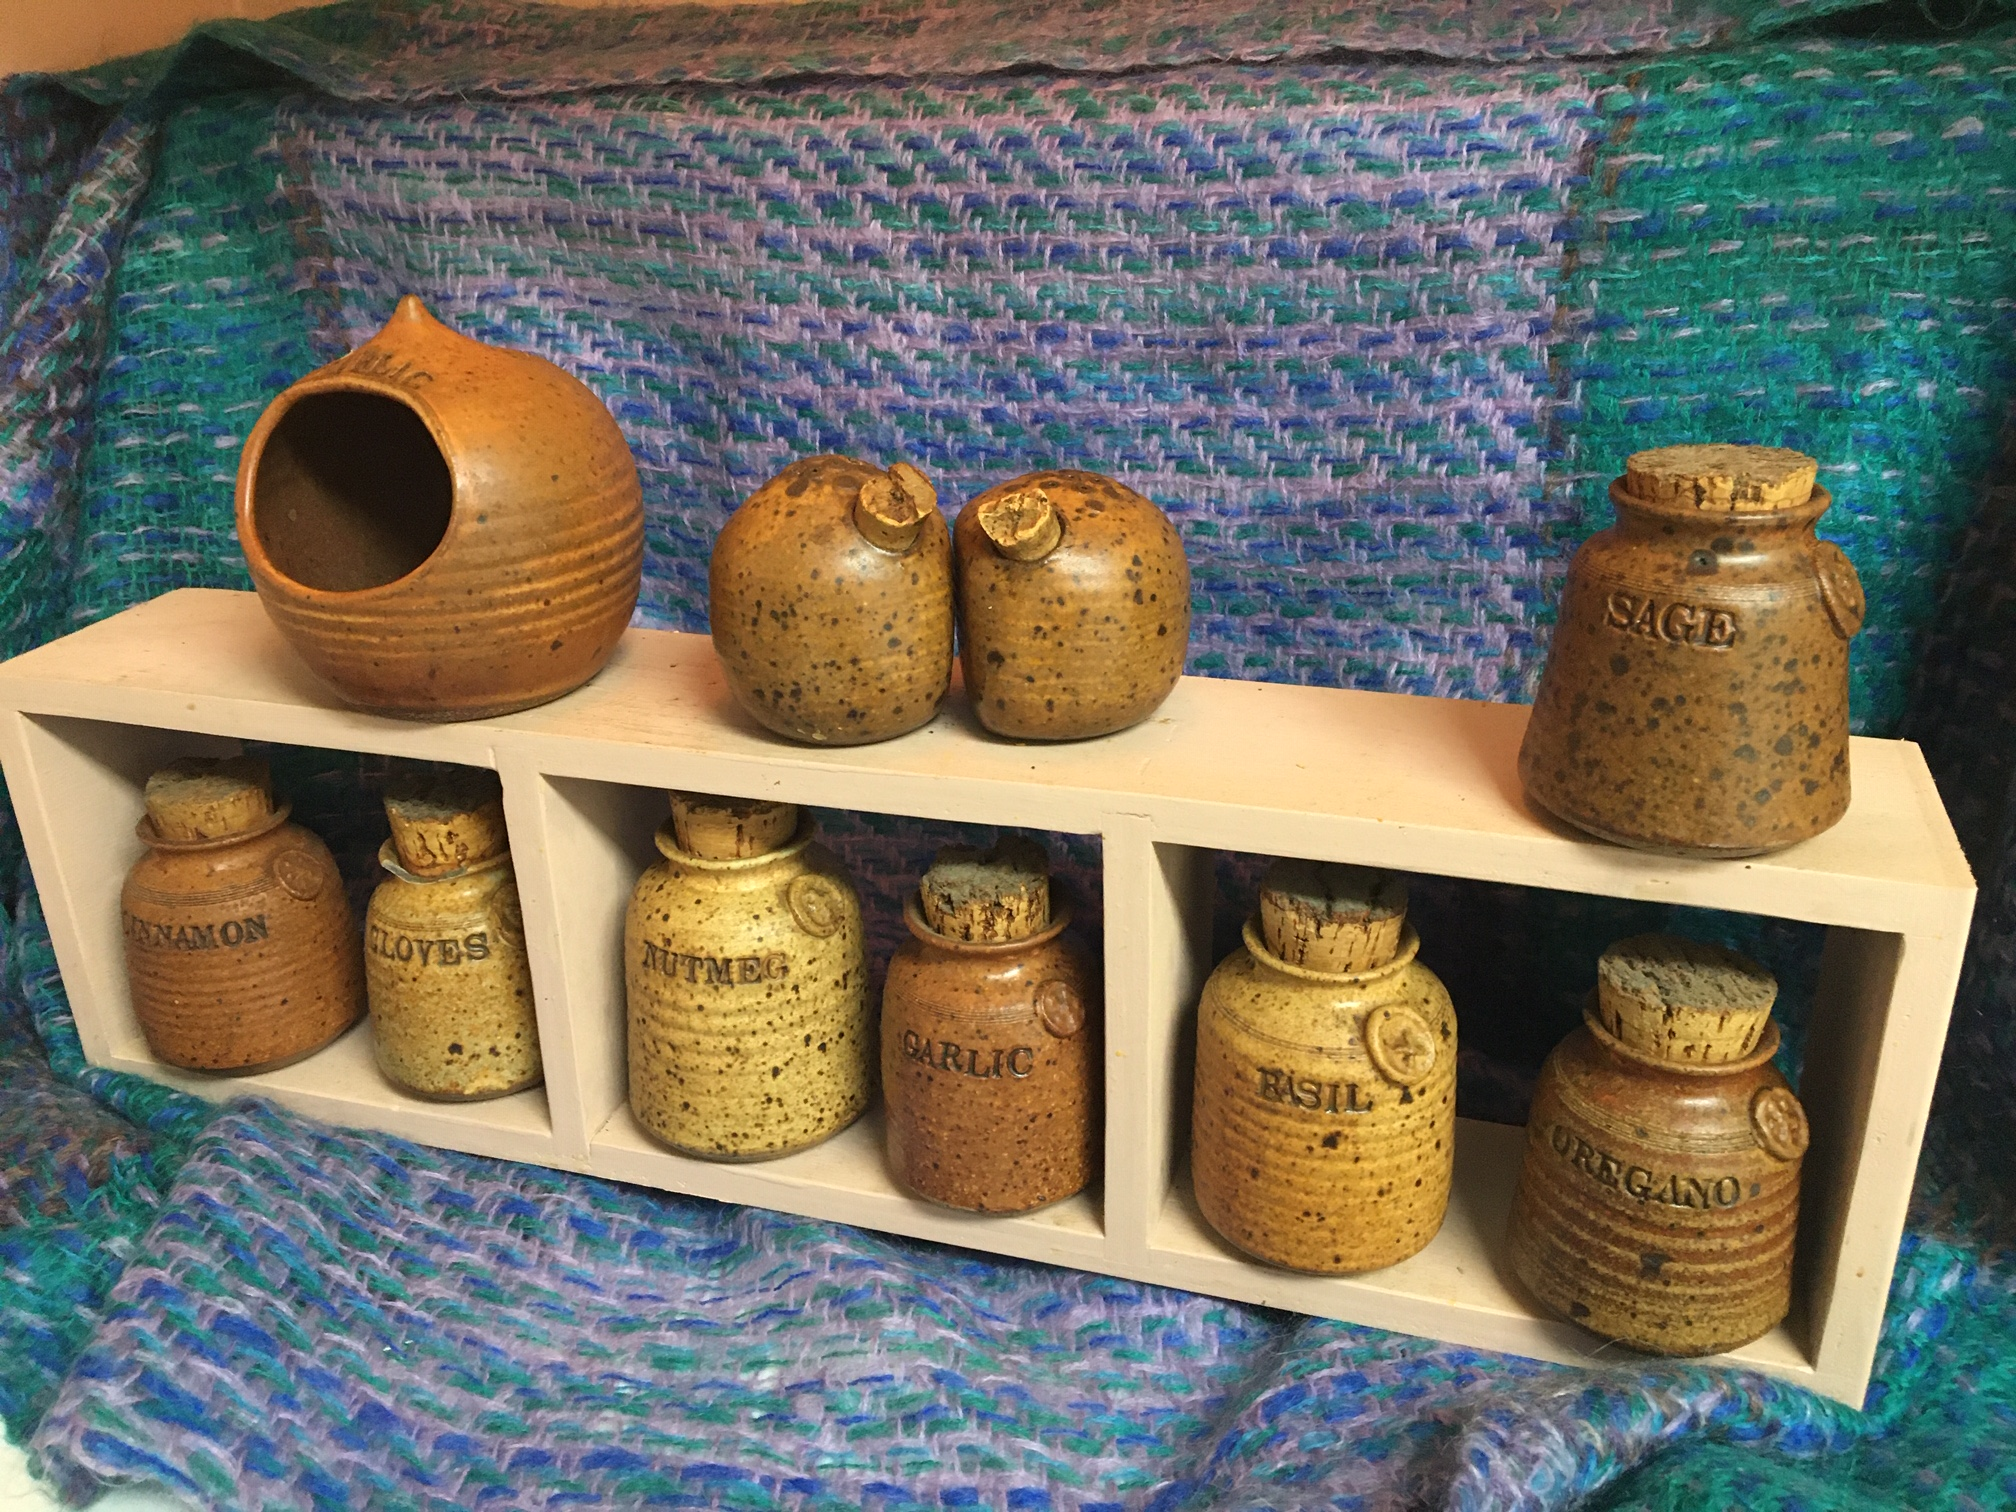 CarolGraham garlic and spice containers